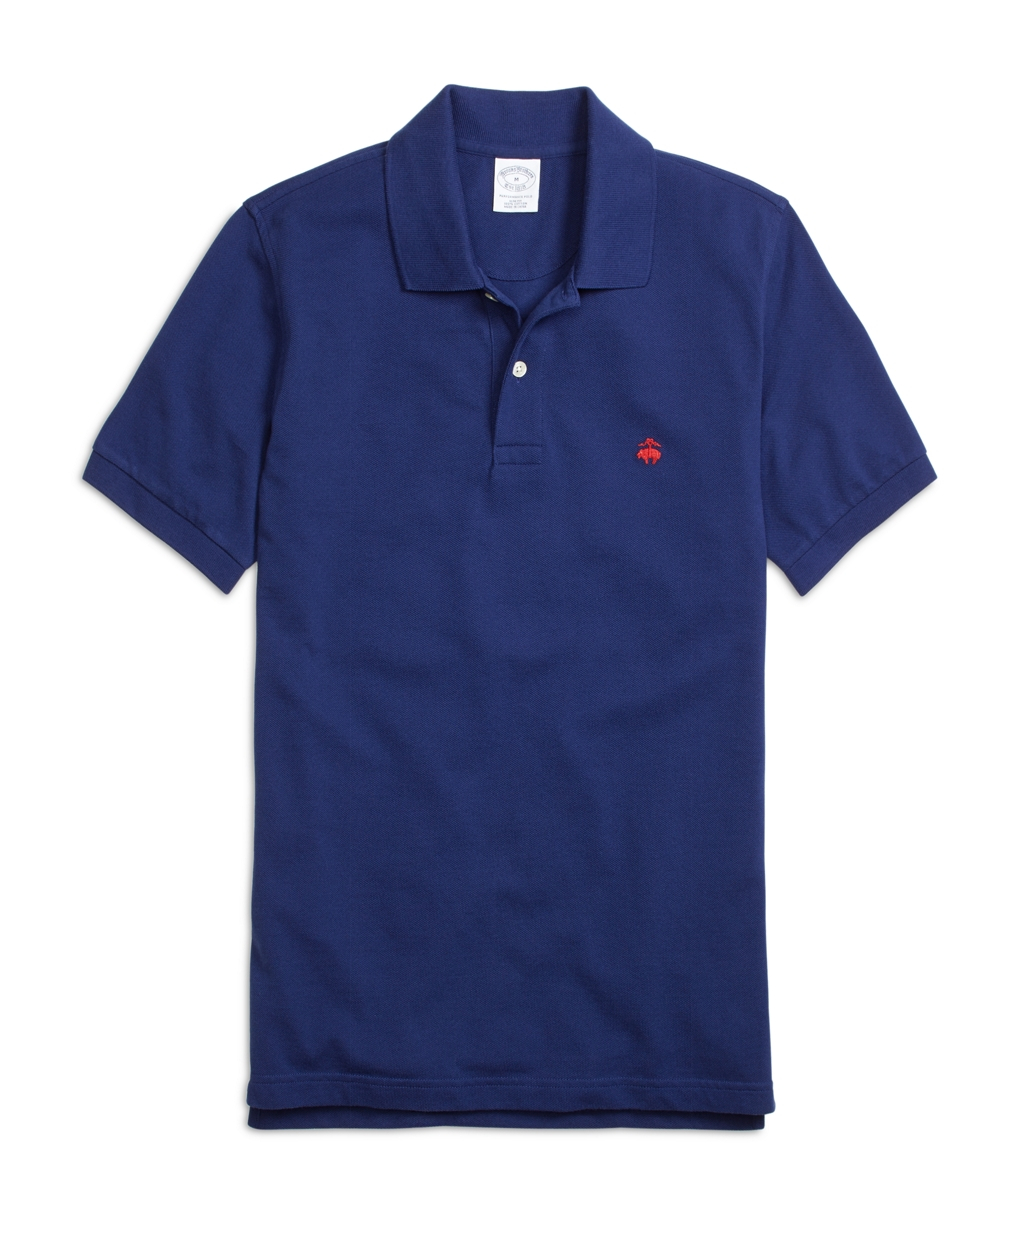 Brooks brothers golden fleece slim fit performance polo for Brooks brothers shirt size guide